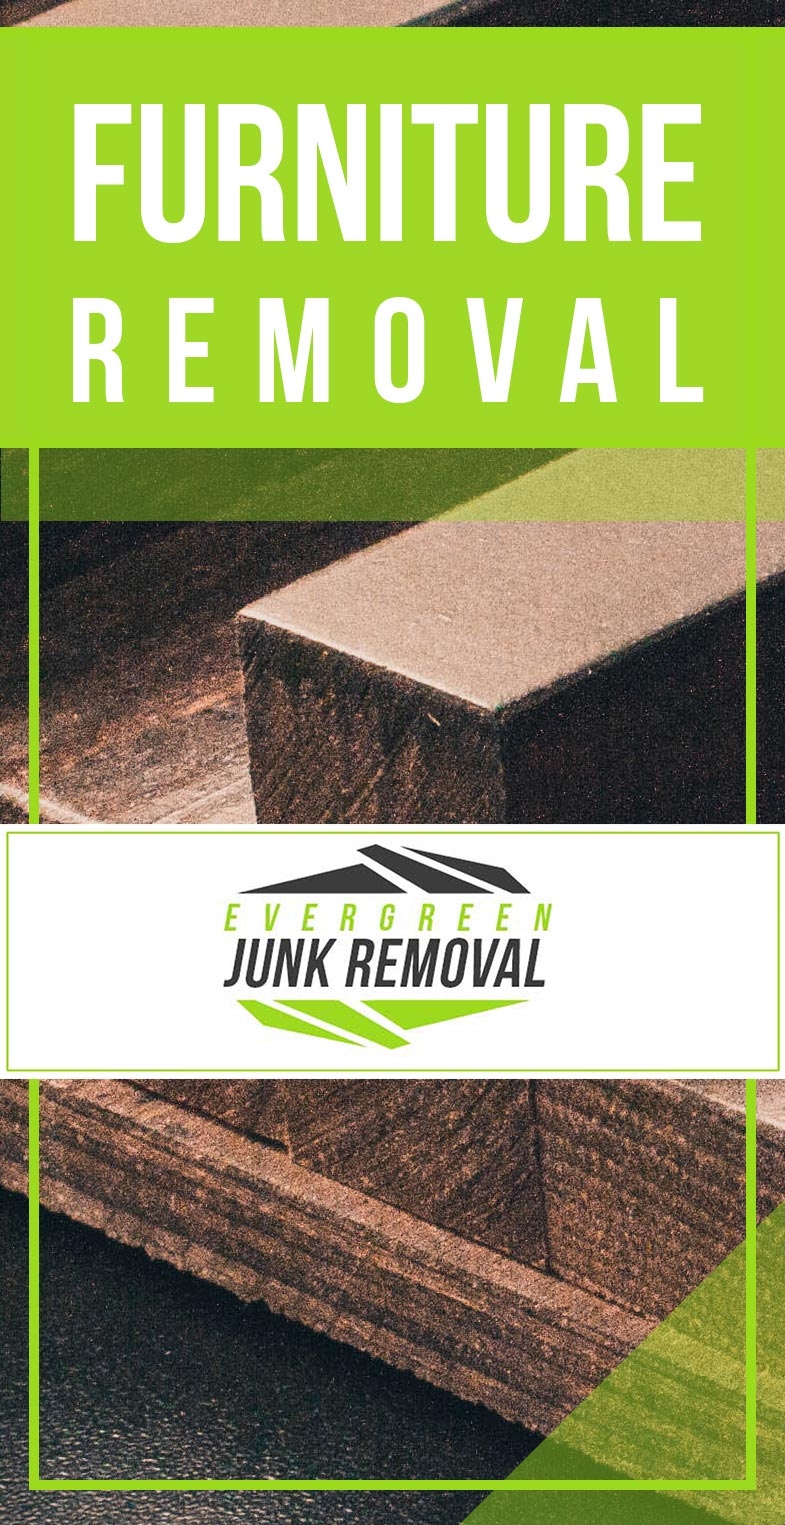 Junk Removal Jupiter Furniture Removal